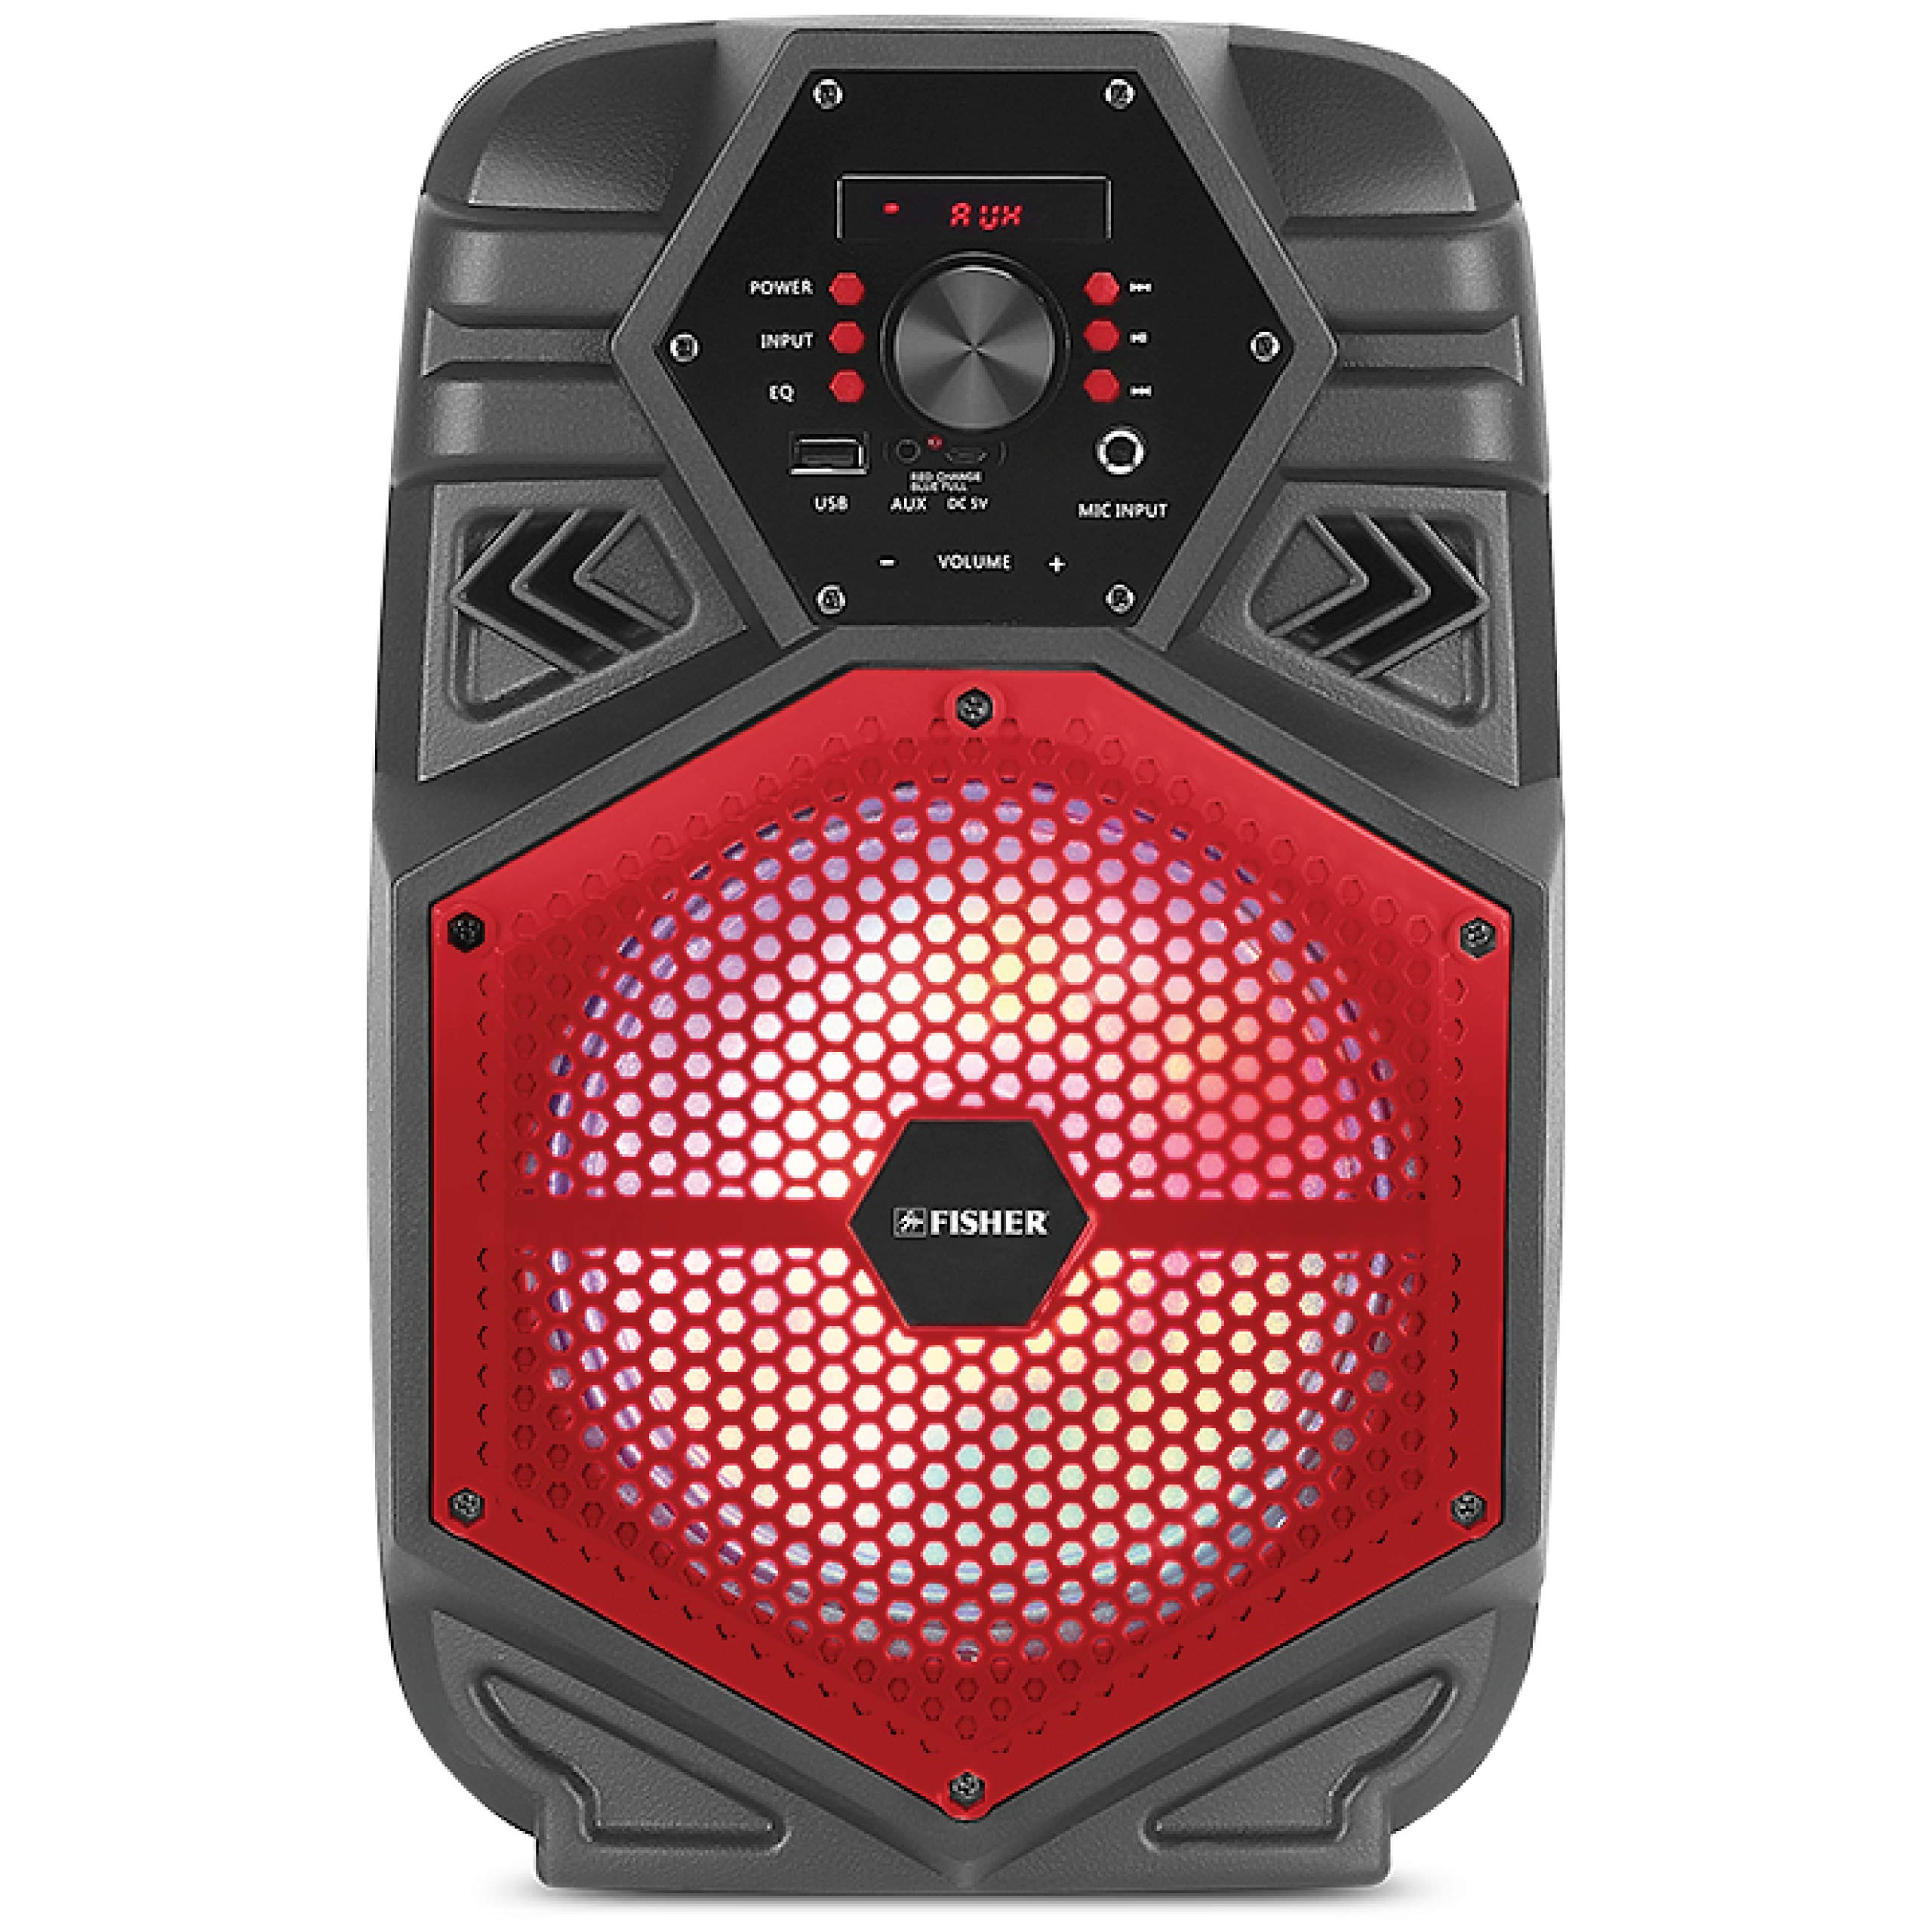 Fisher FBX880 Compact Portable 8-inch Karaoke Speaker, PA System, Bluetooth, FM Radio, USB/Aux/Microphone Inputs (Red)